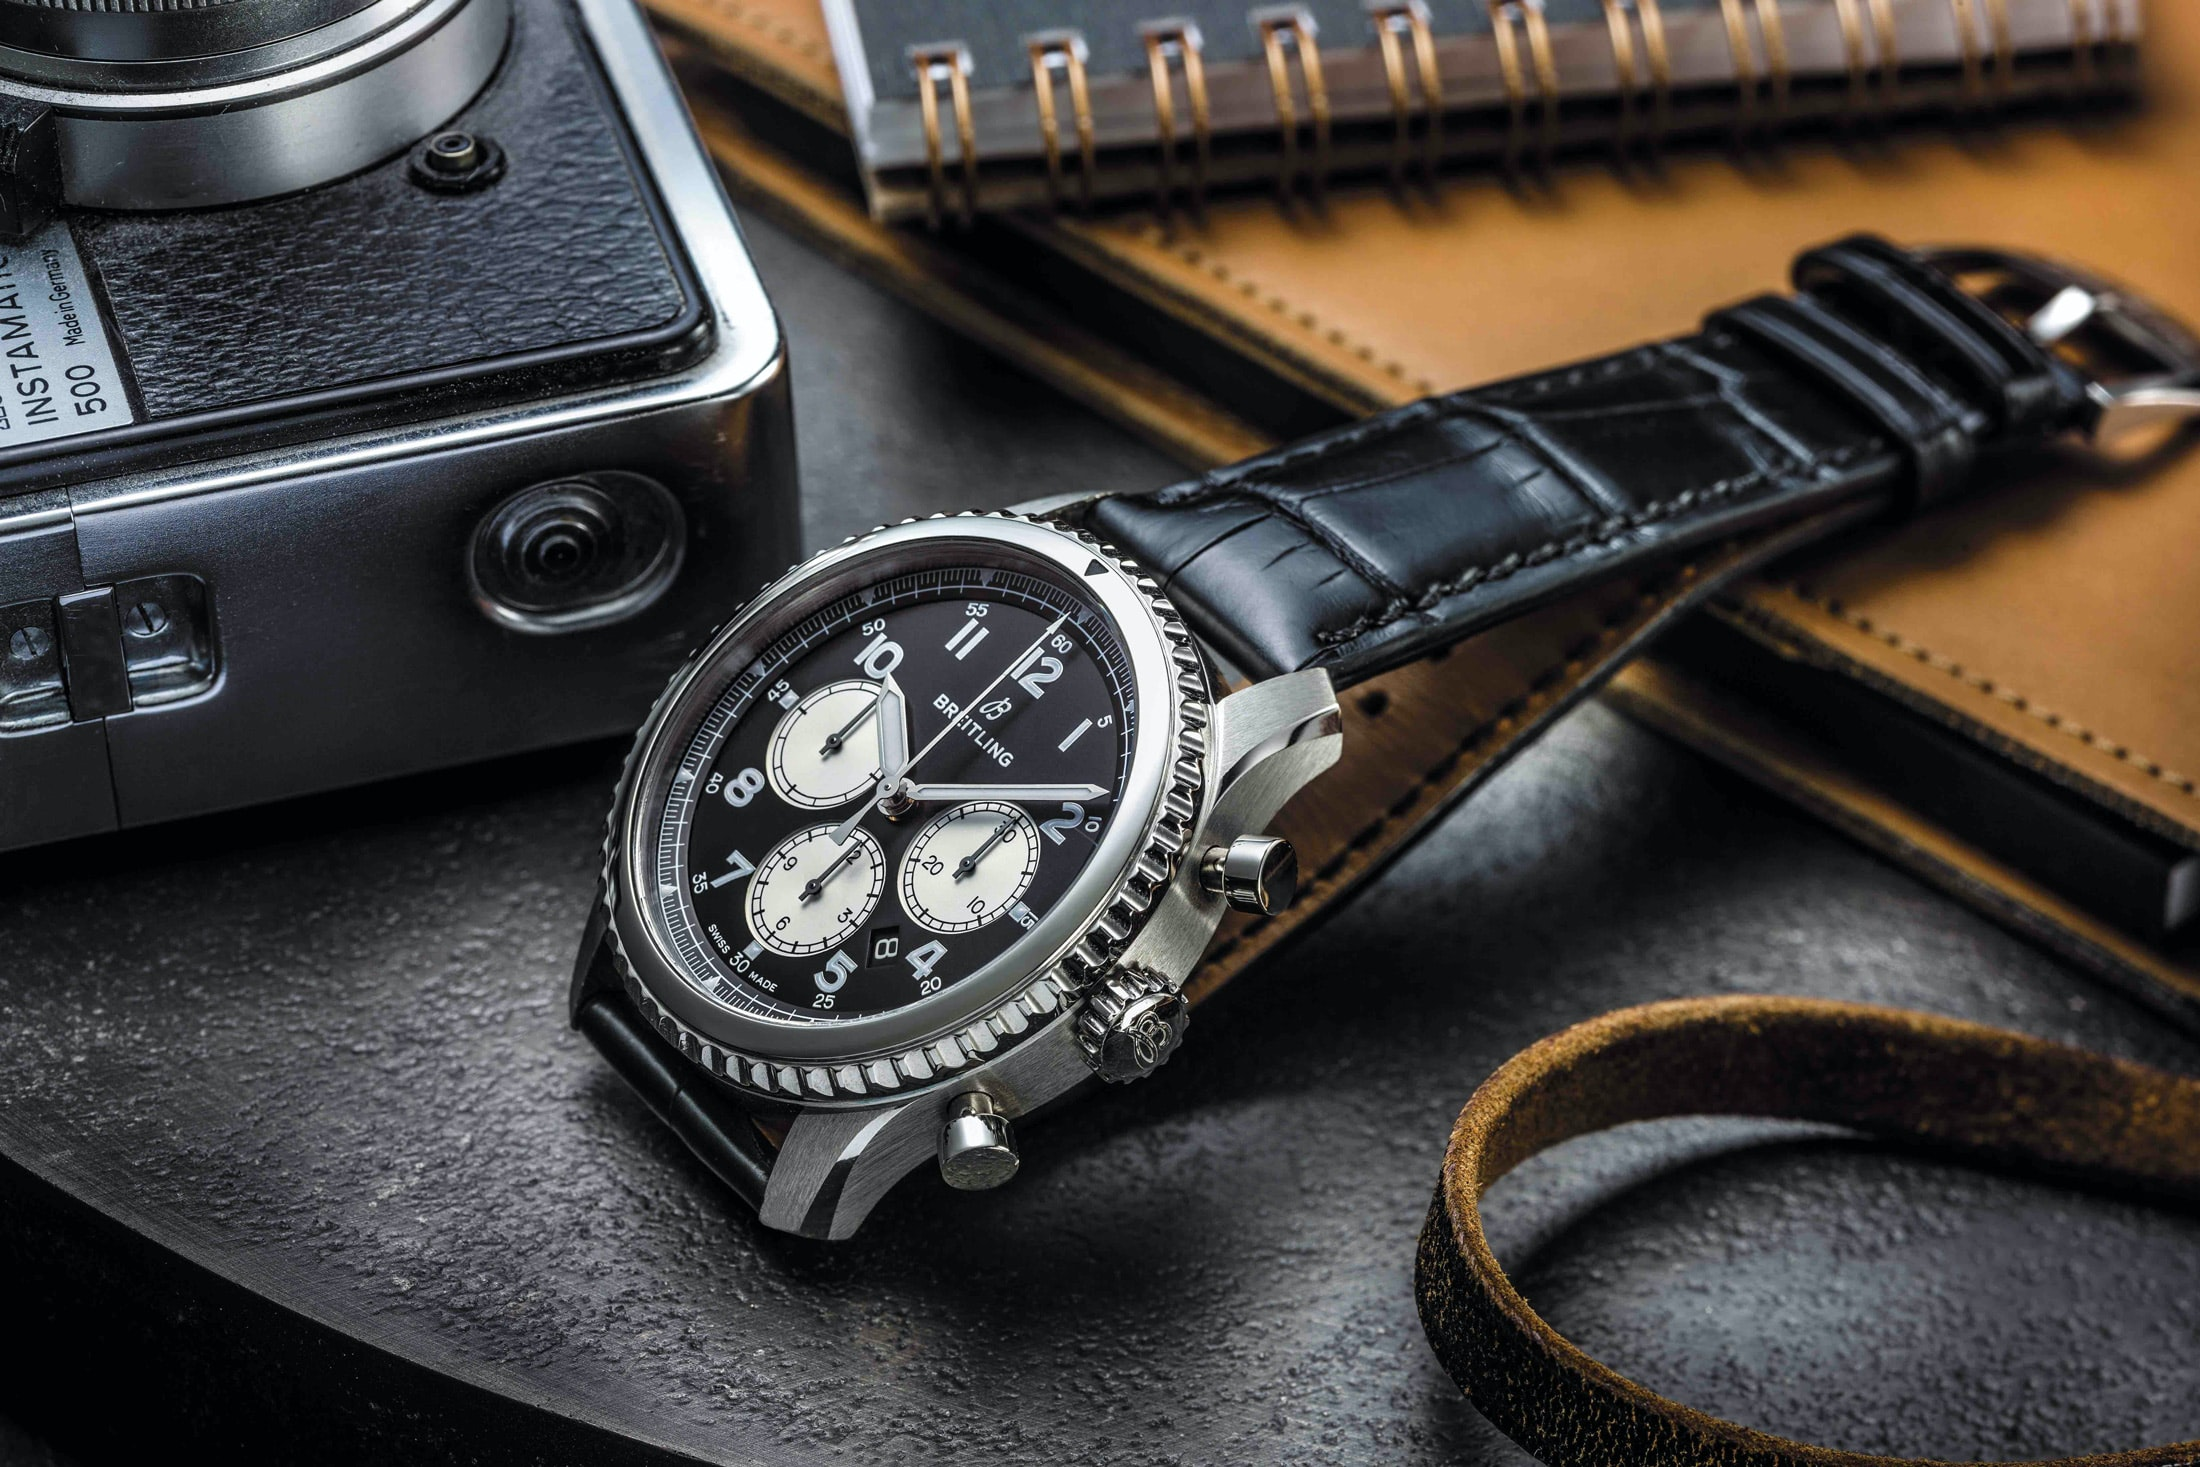 Introducing: The Breitling Navitimer 8 B01 Introducing: The Breitling Navitimer 8 B01 b01 2